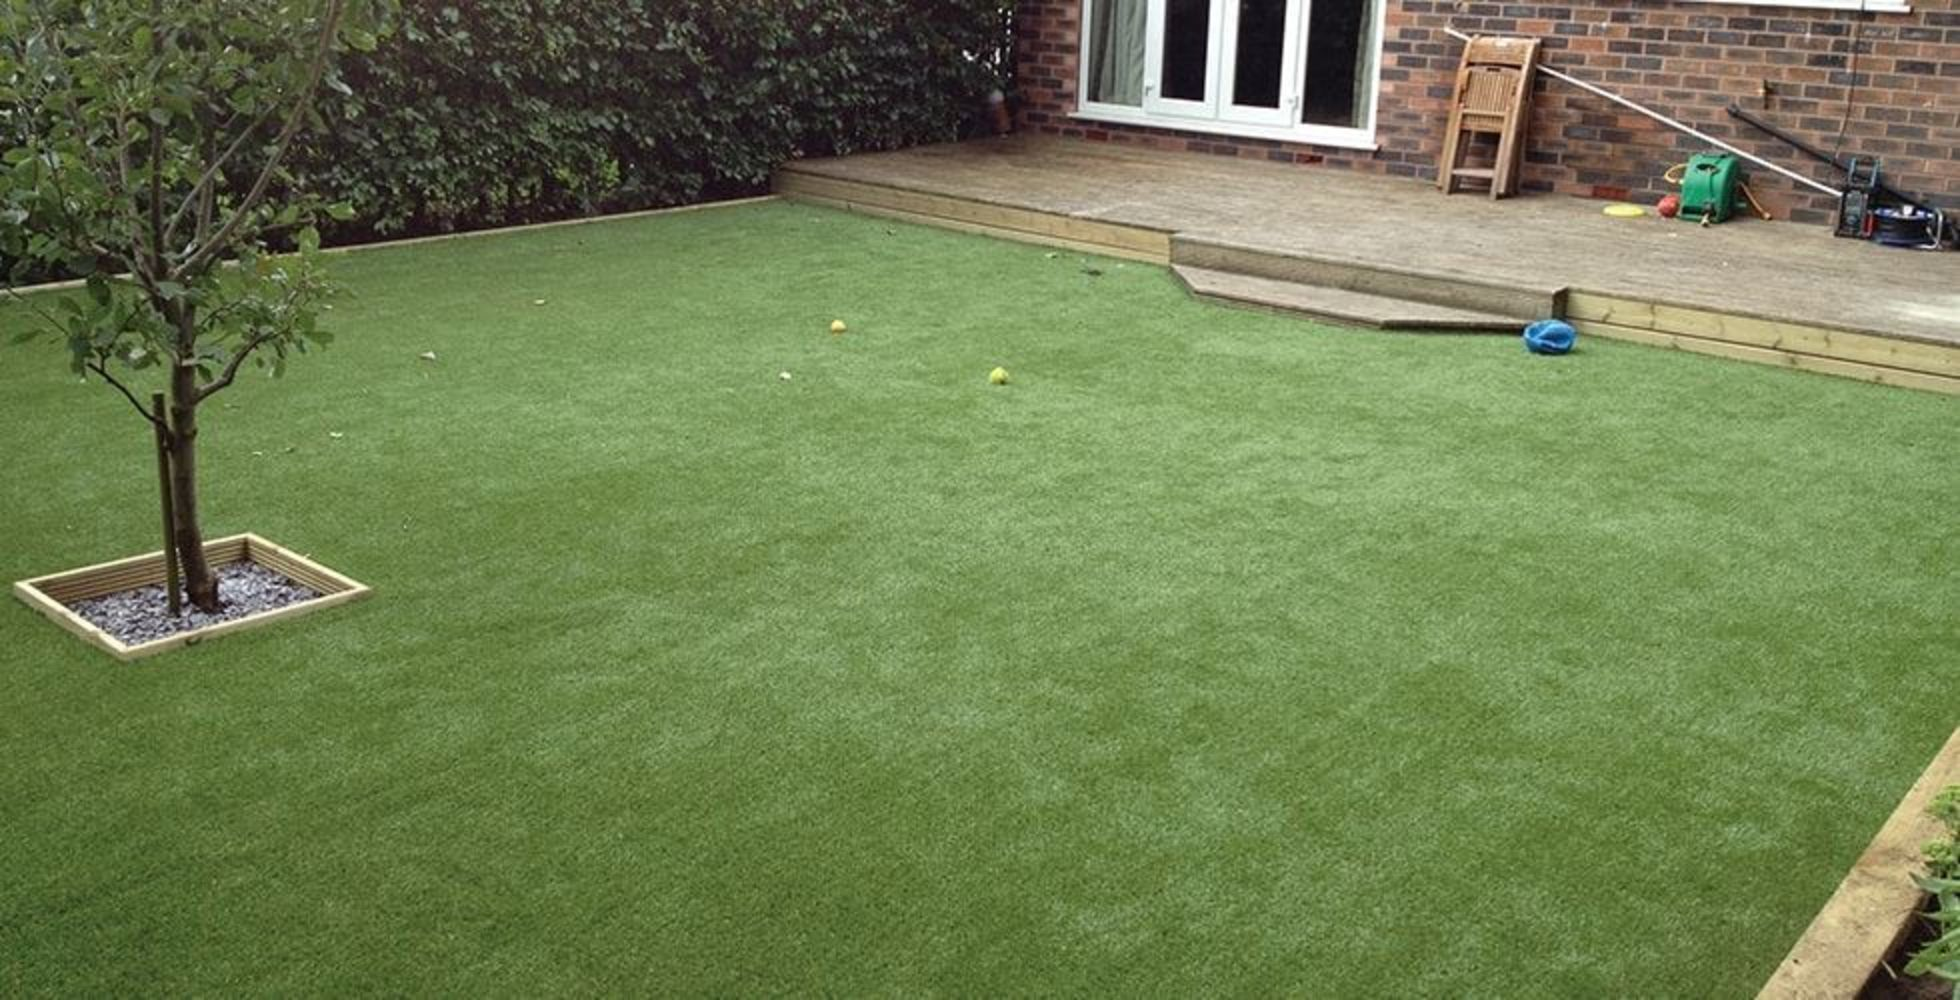 Heavy Duty G5 Astro-Turf, Decking and Accessories   No VAT (on Hammer)   Free of Charge Shipping Available